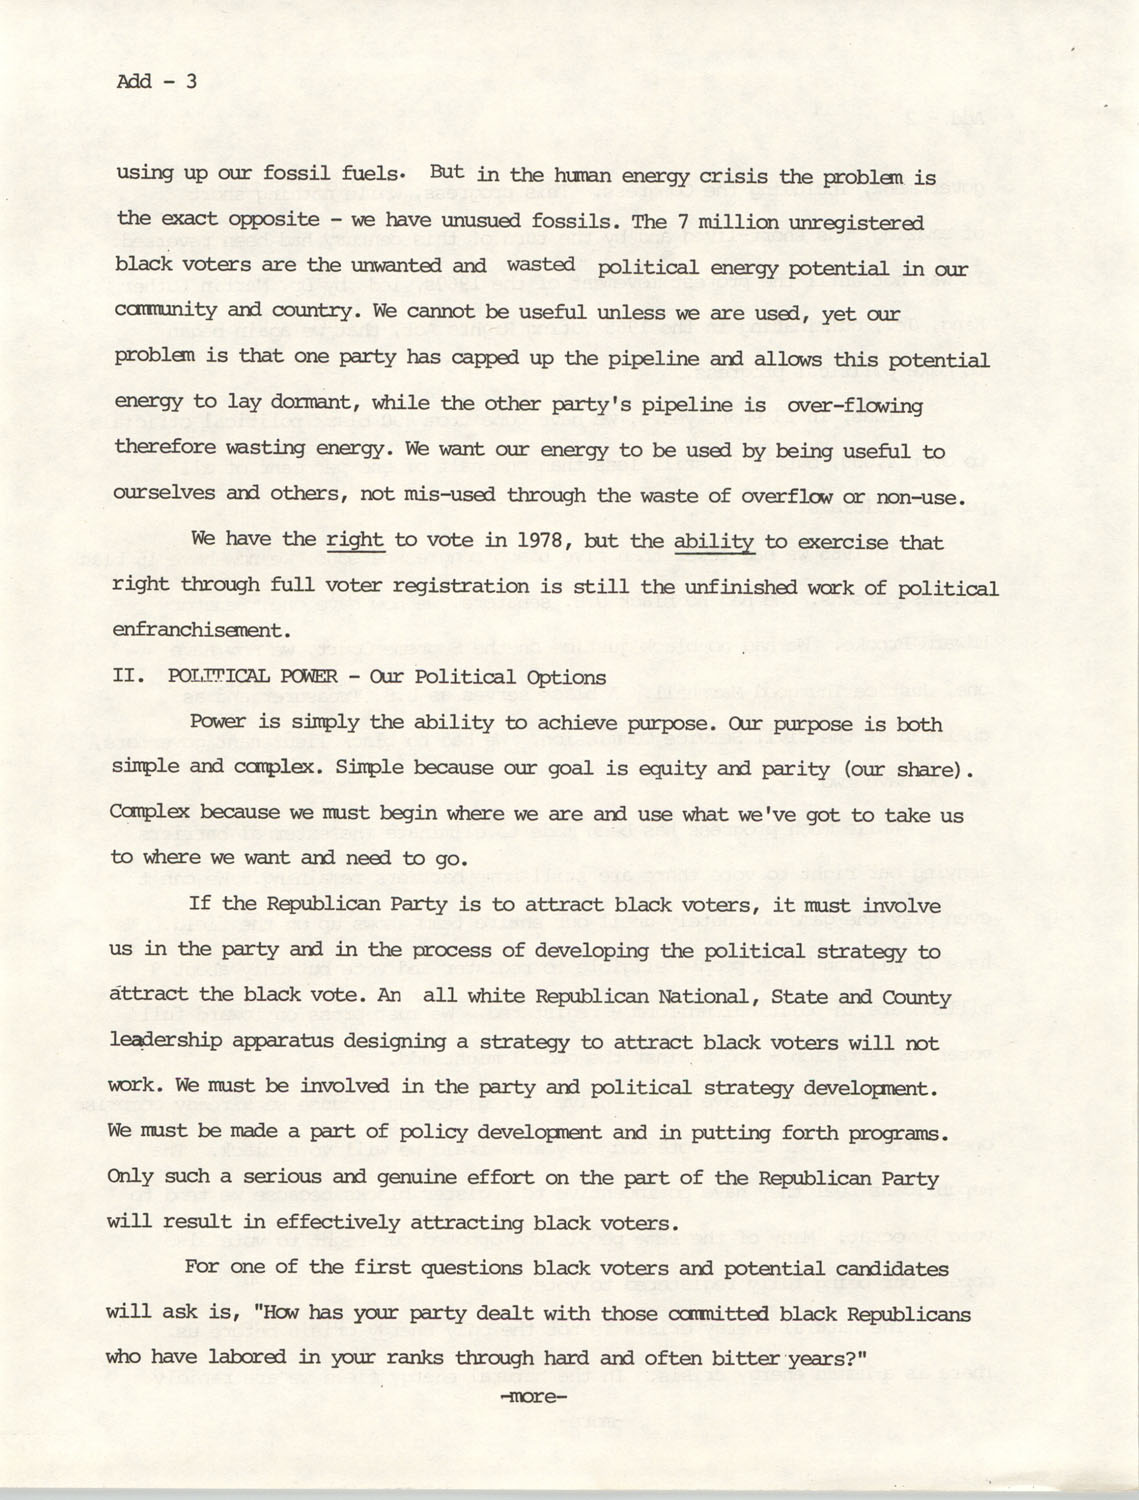 Speech Before the Republican National Committee, Page 3